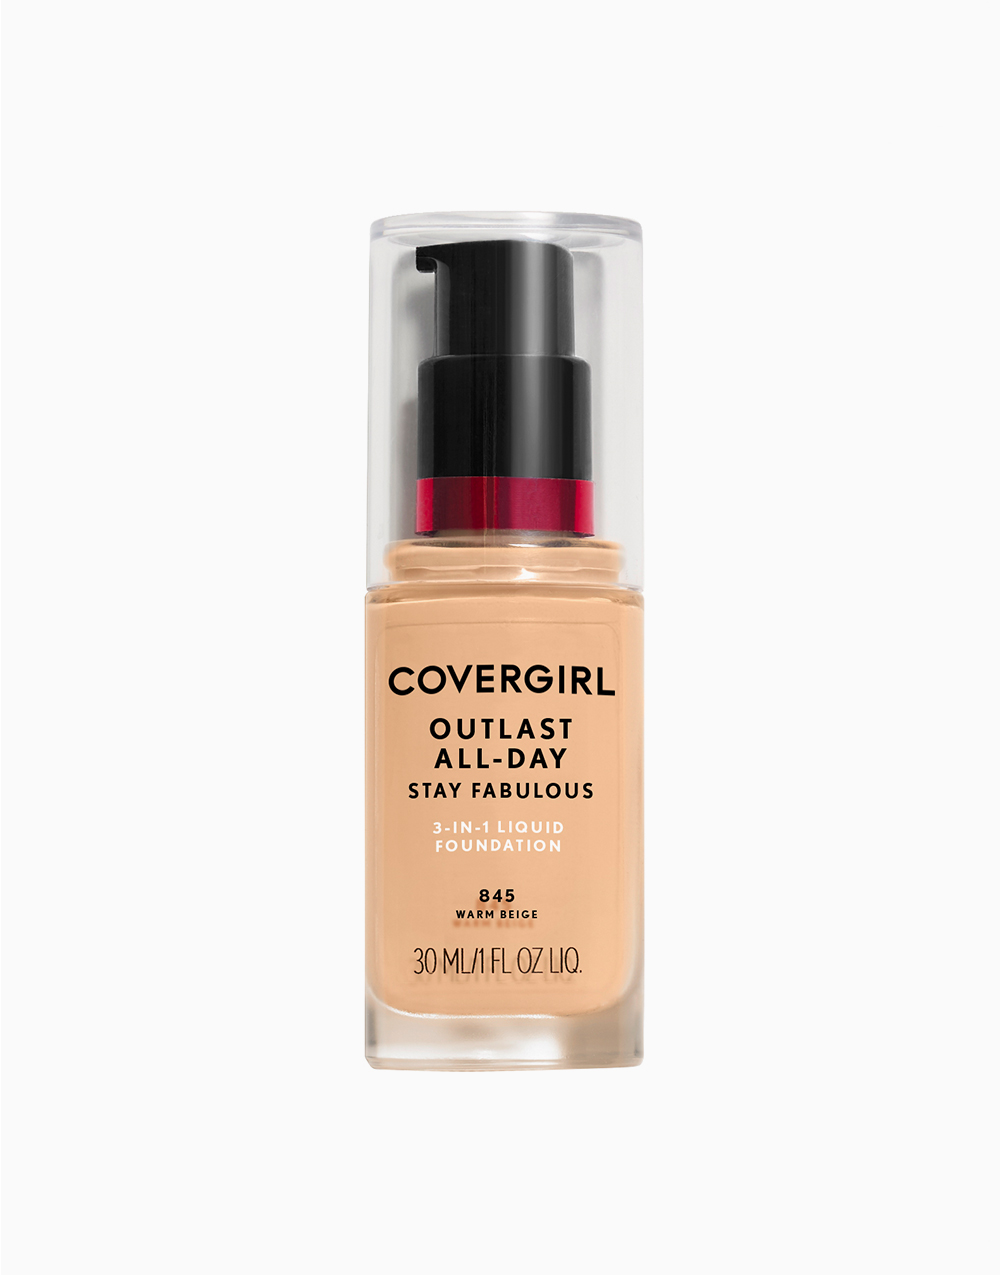 Outlast Stay Fabulous 3-in-1 Foundation by CoverGirl   Warm Beige